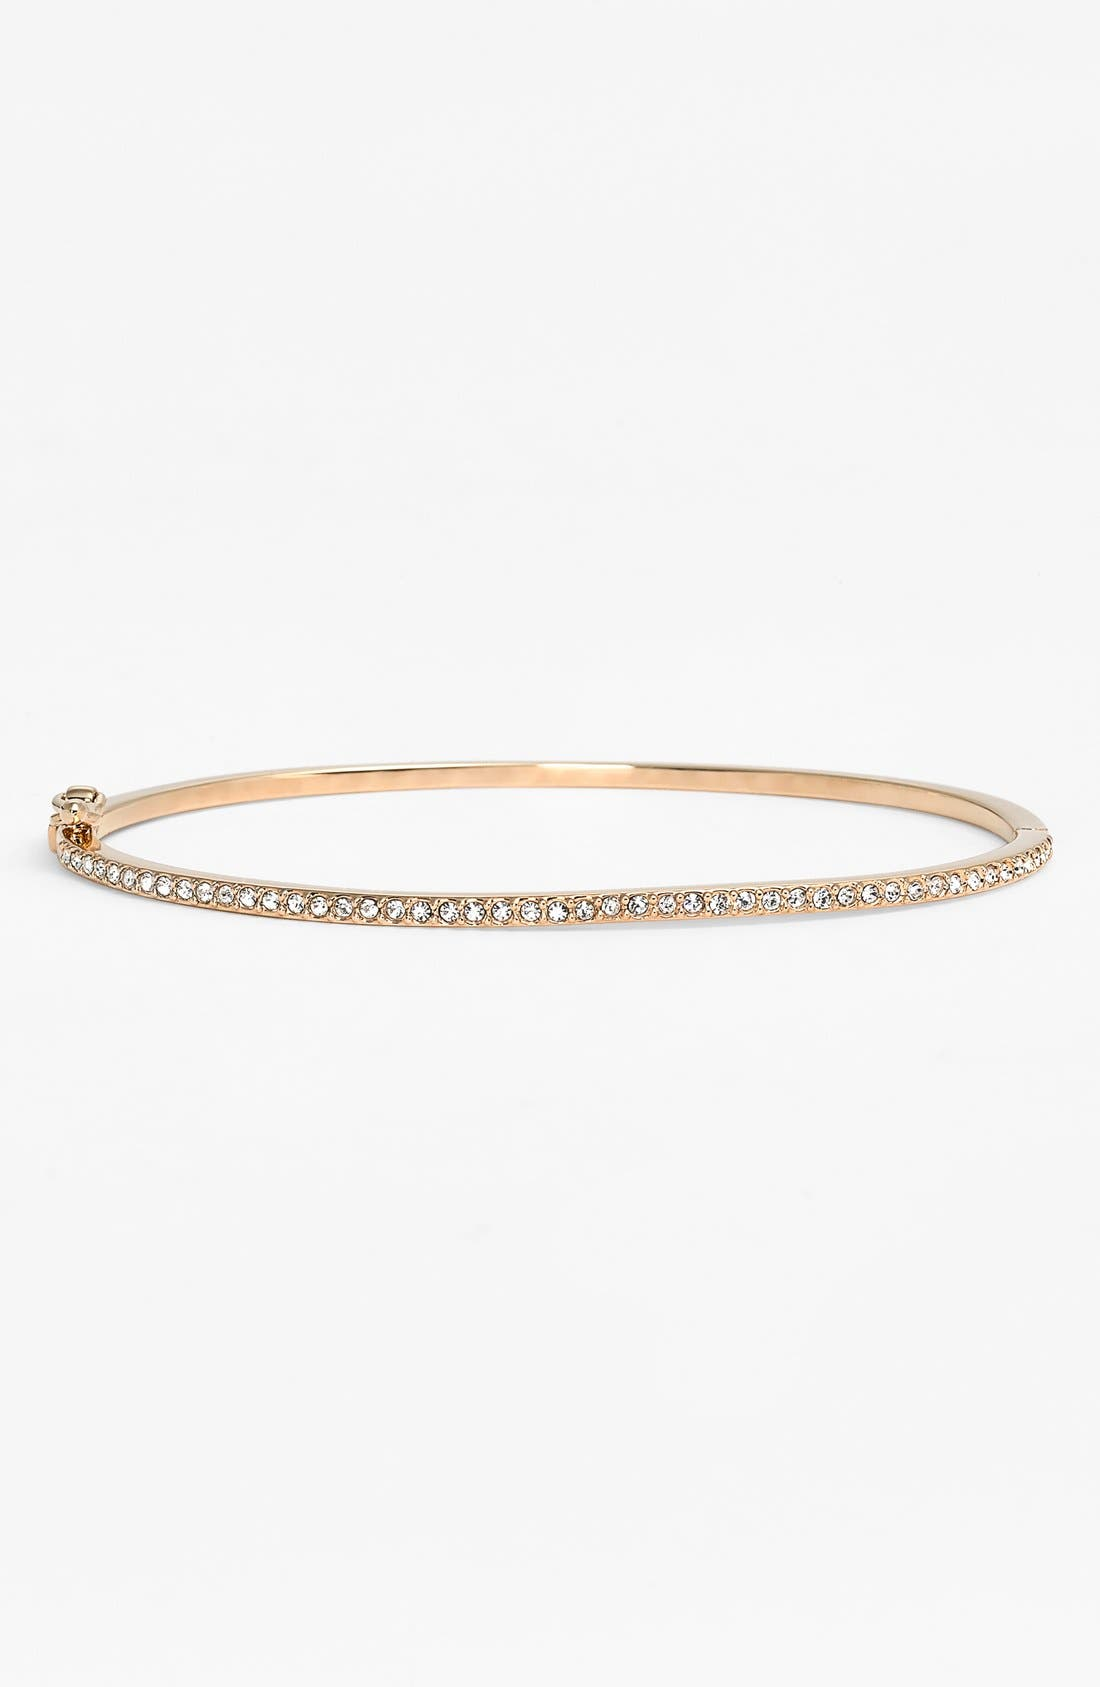 Main Image - Judith Jack Boxed Skinny Pavé Hinge Bangle